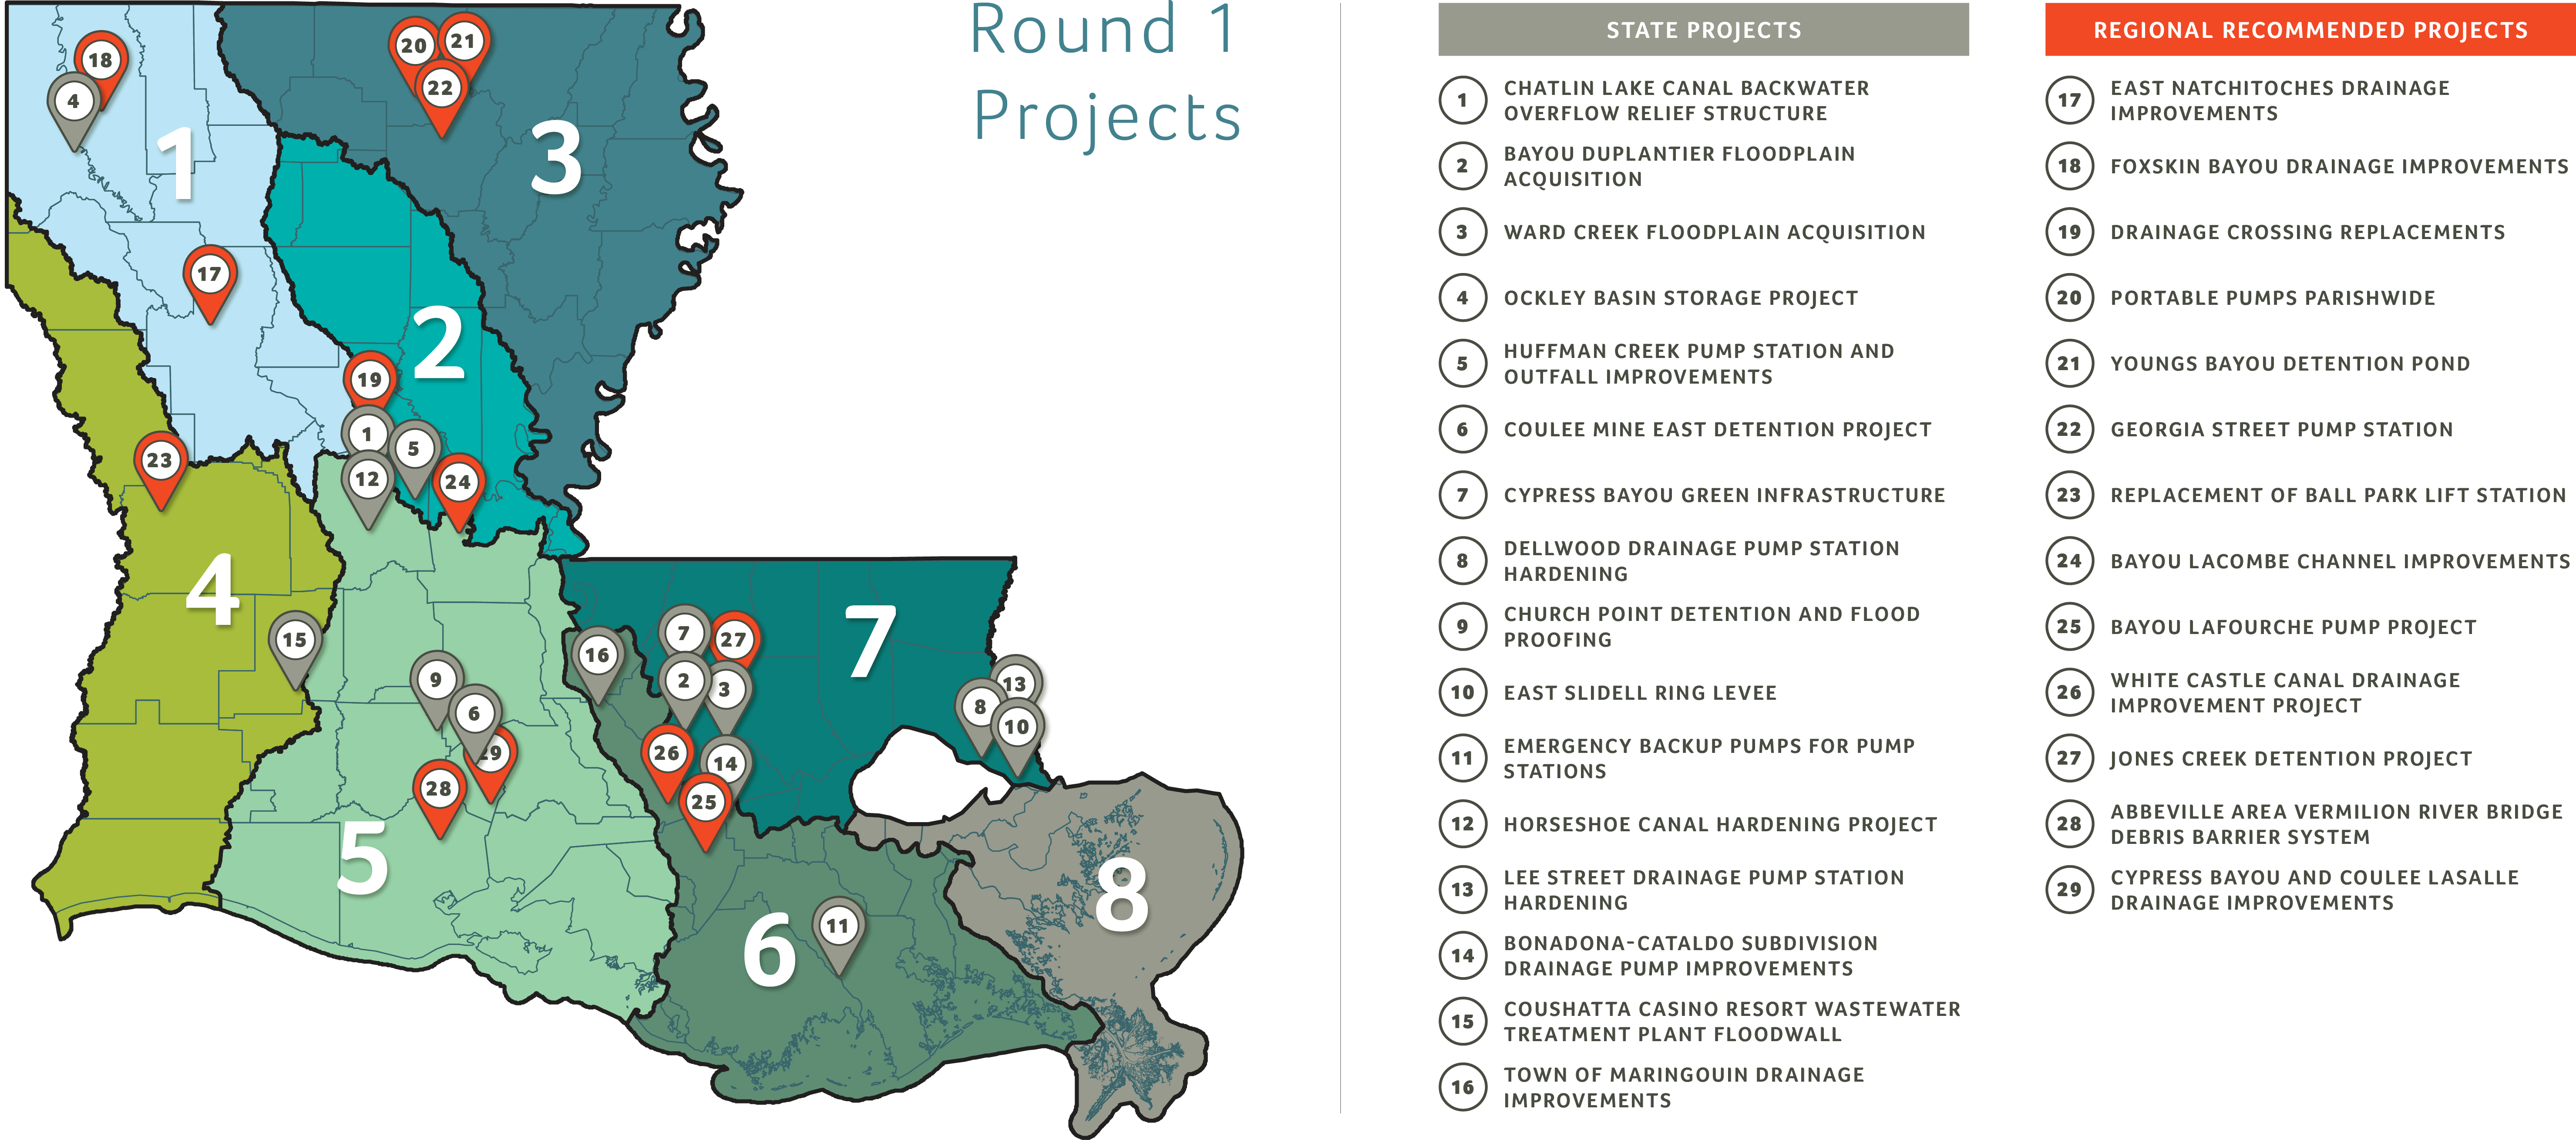 Map of Round 1 state and regional recommended projects